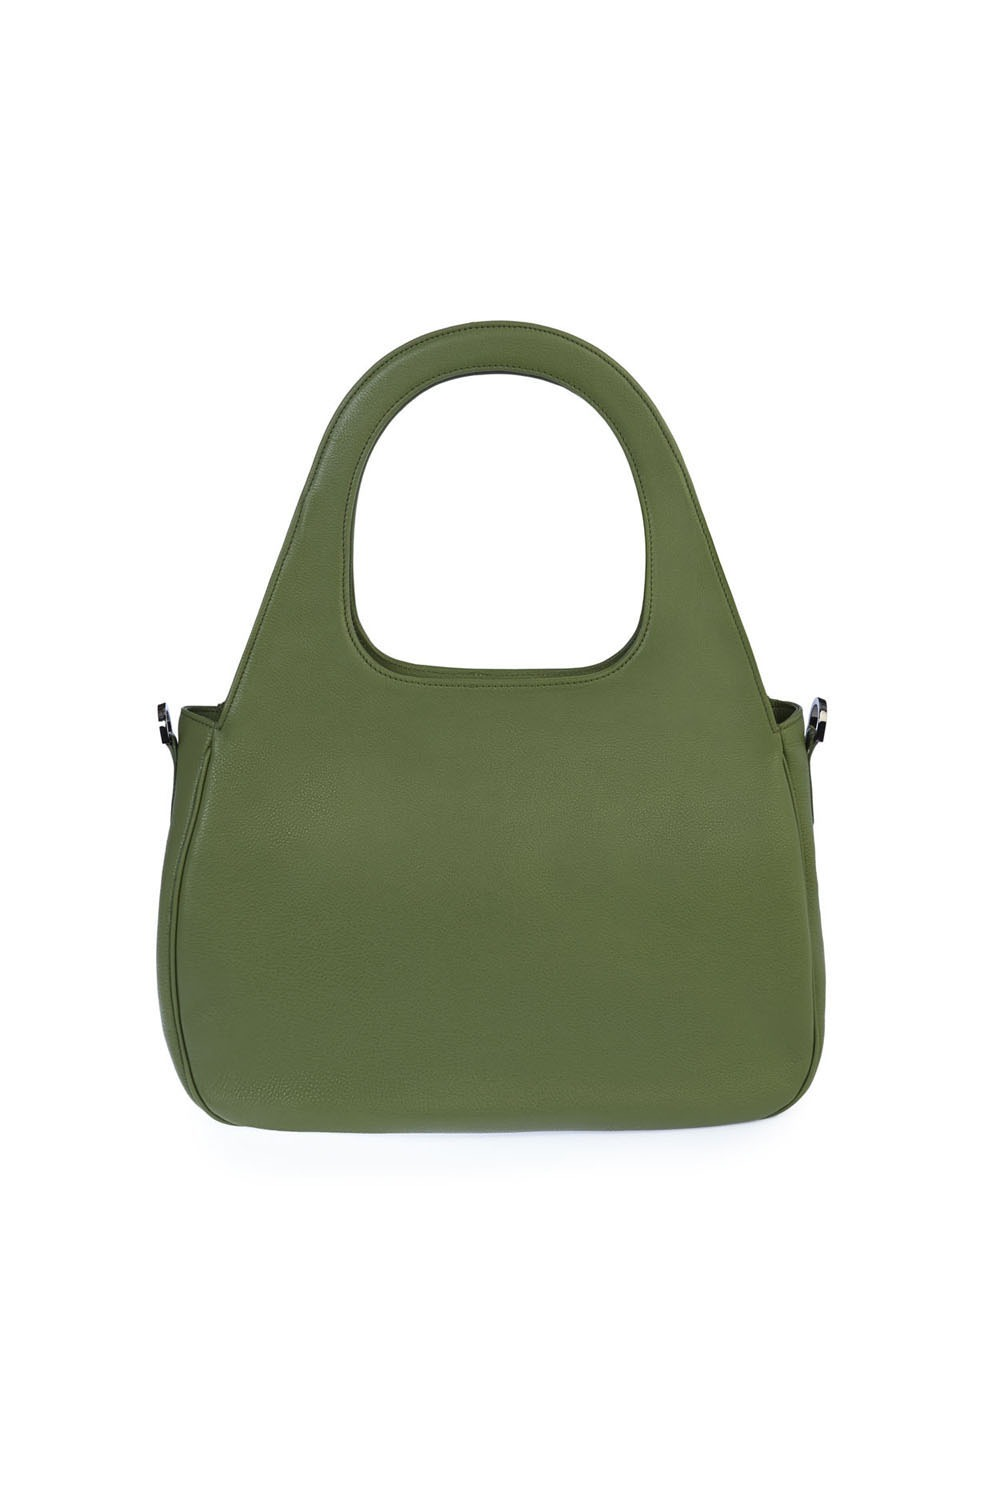 VATINEL HANDBAGS BERLIN FOREST GREEN